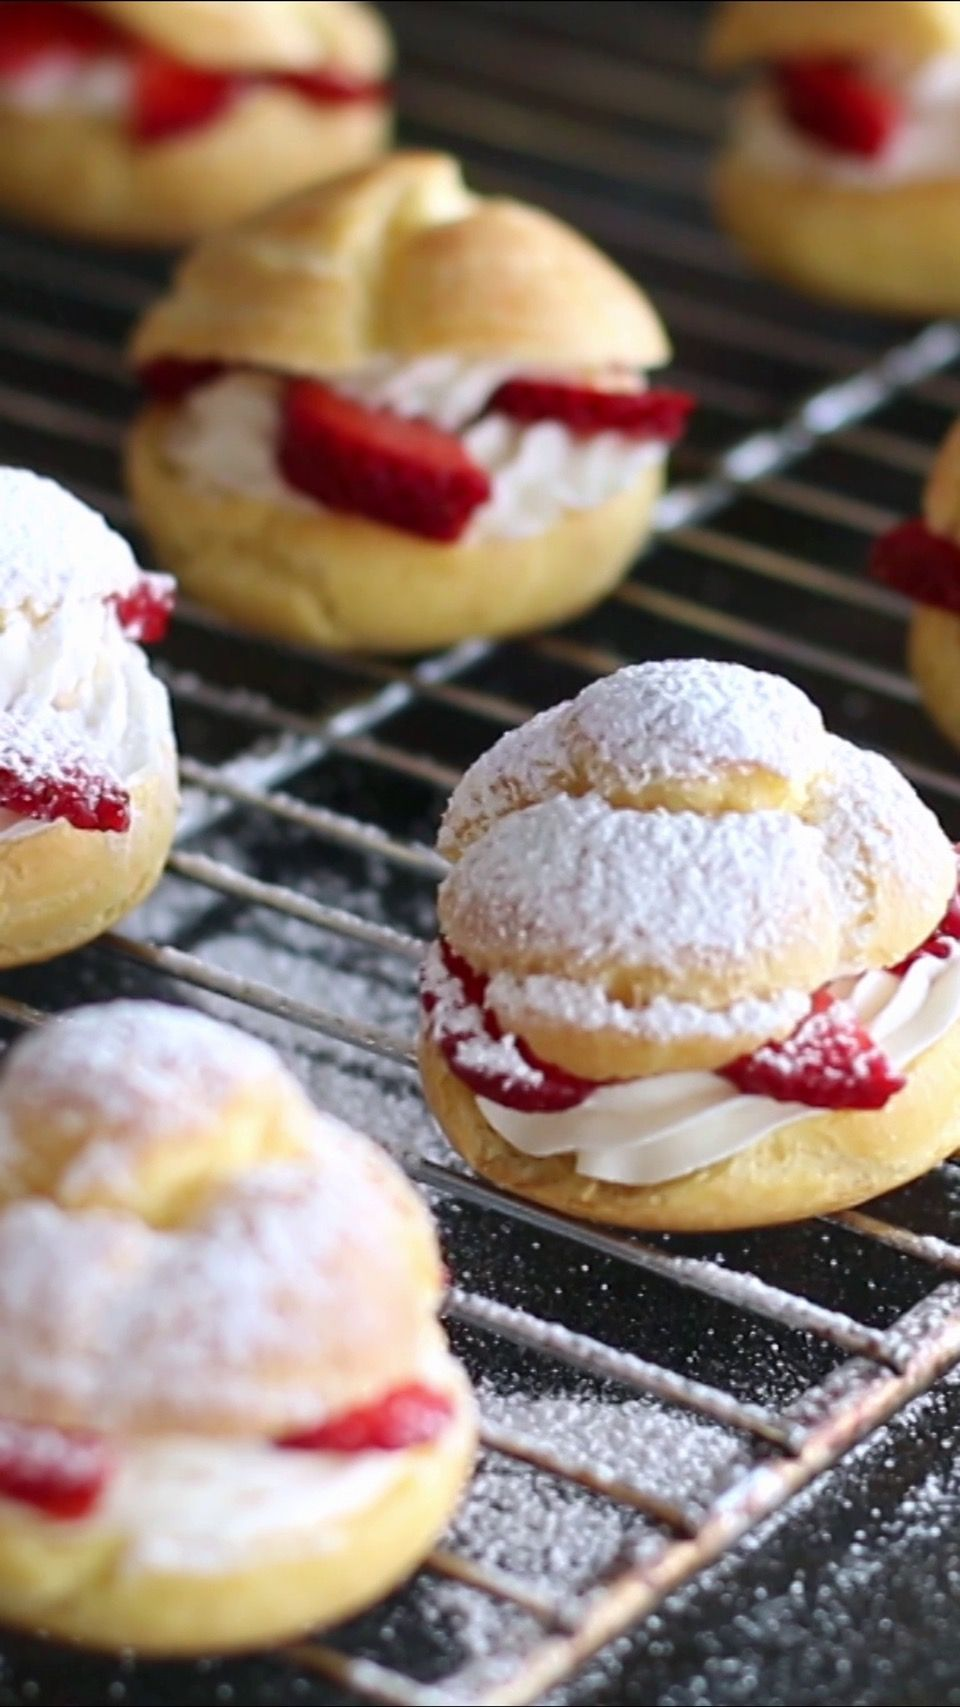 Recipe with video instructions: Strawberry and cream puffs guaranteed to please. Ingredients: 1 cup (125 g) flour, 3.5 oz (100 ml) milk, 3.5 oz (100 ml) water, 2 tsp (10 g) sugar, 1/2 tsp salt, 5 1/2 tbsp (80g) unsalted butter, 4 eggs, Filling, 2 cups (480g) heavy cream, 1⁄3 cup (40g) powdered sugar, 1 tsp (5g) vanilla extract, Fresh strawberries, cut into slices